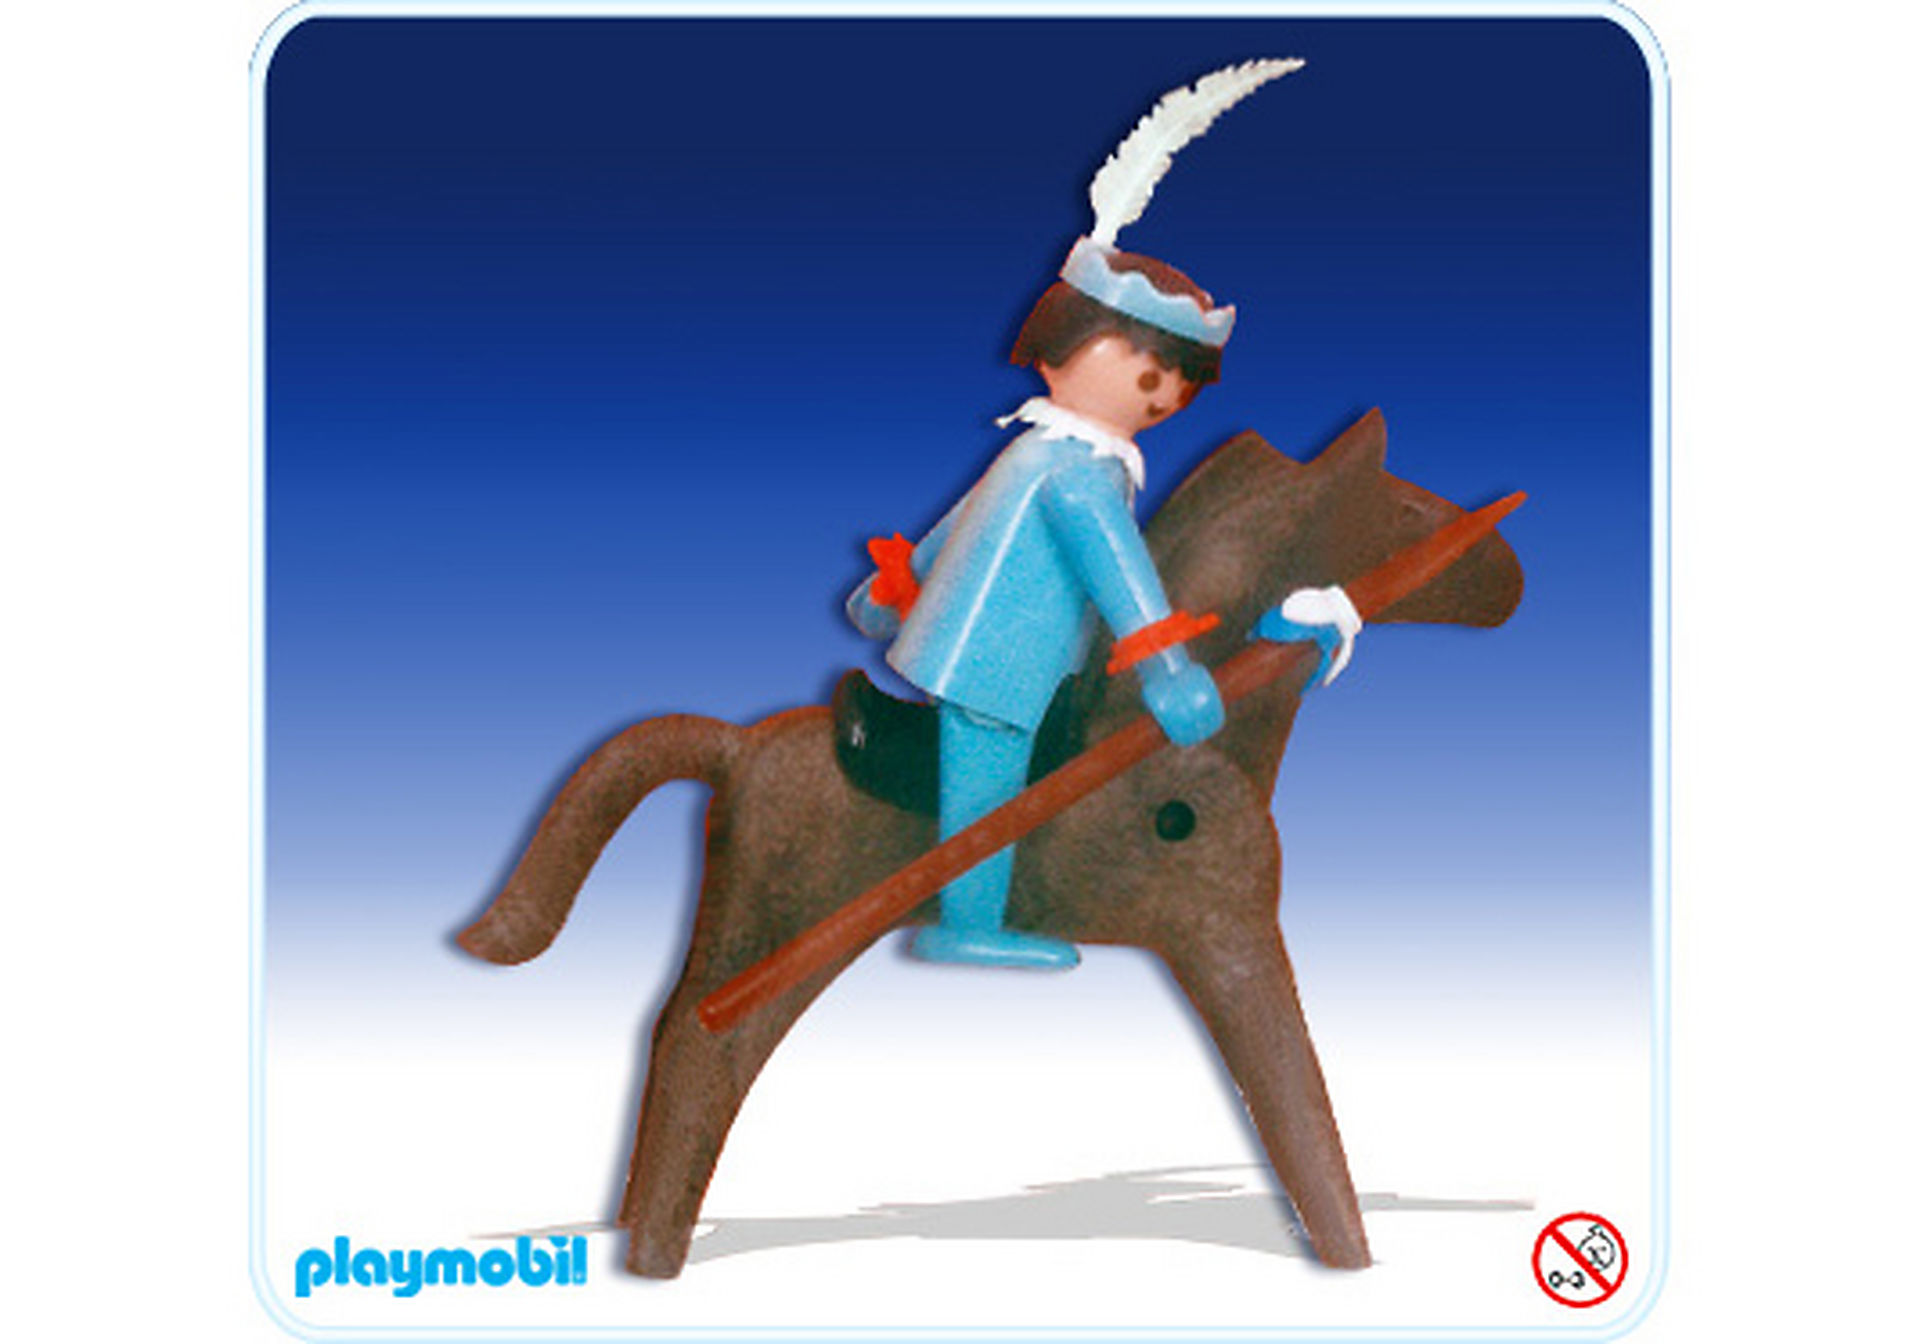 http://media.playmobil.com/i/playmobil/3255-A_product_detail/Indianer